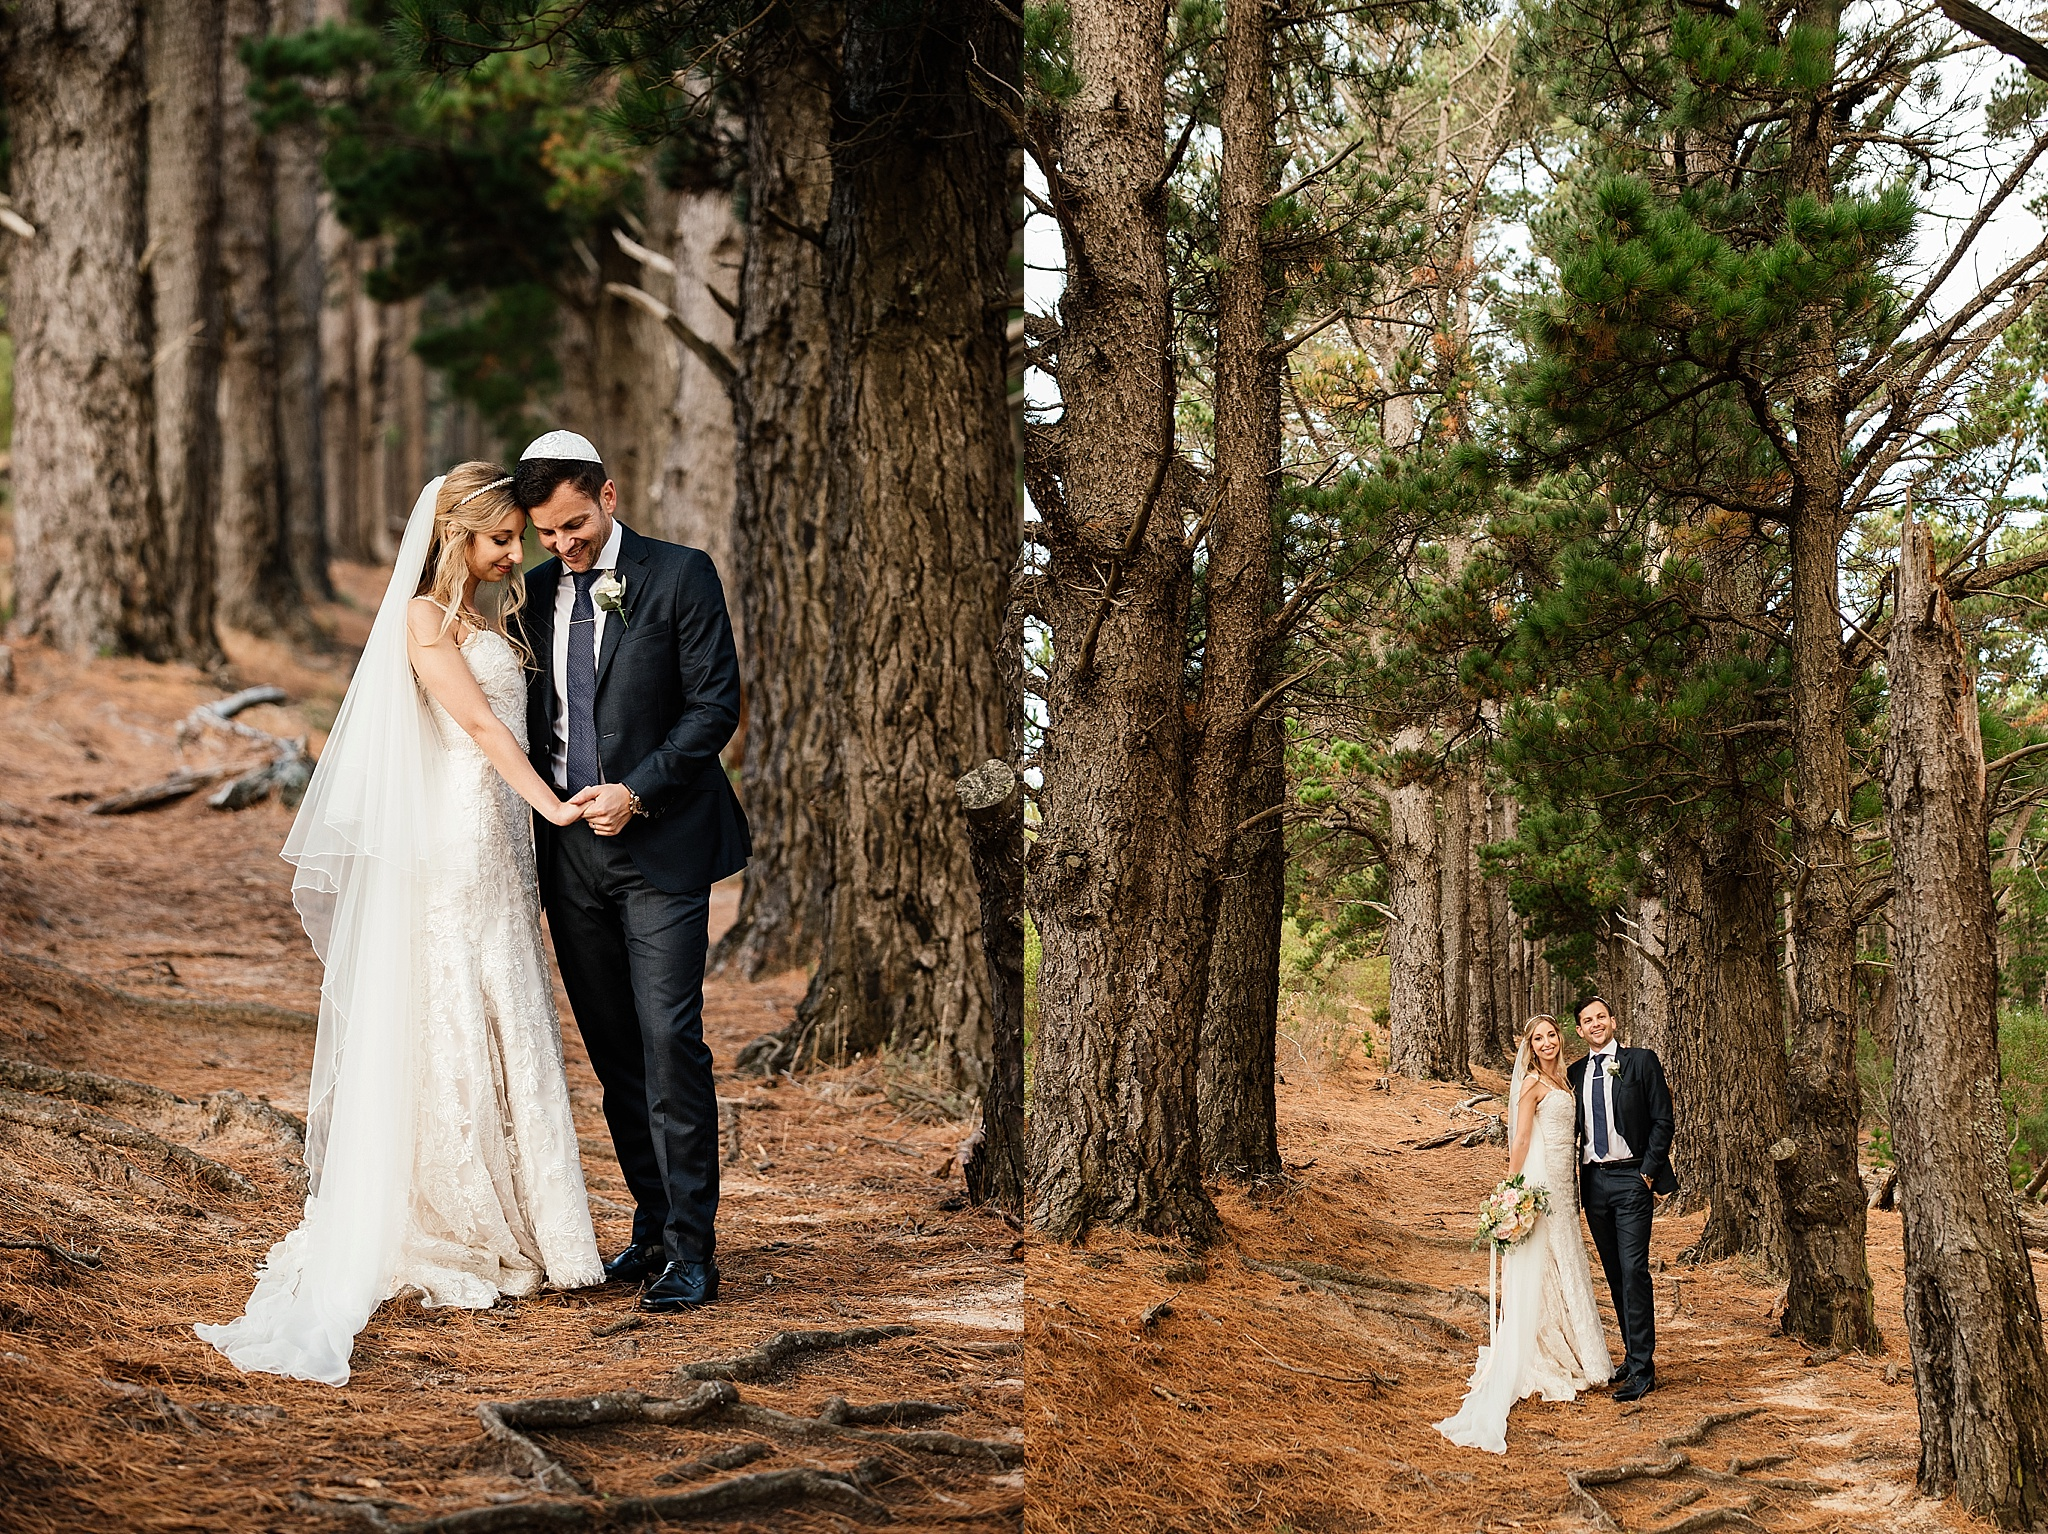 Cape Town Wedding Photographer Darren Bester - SuikerBossie - Stephen and Mikaela_0035.jpg